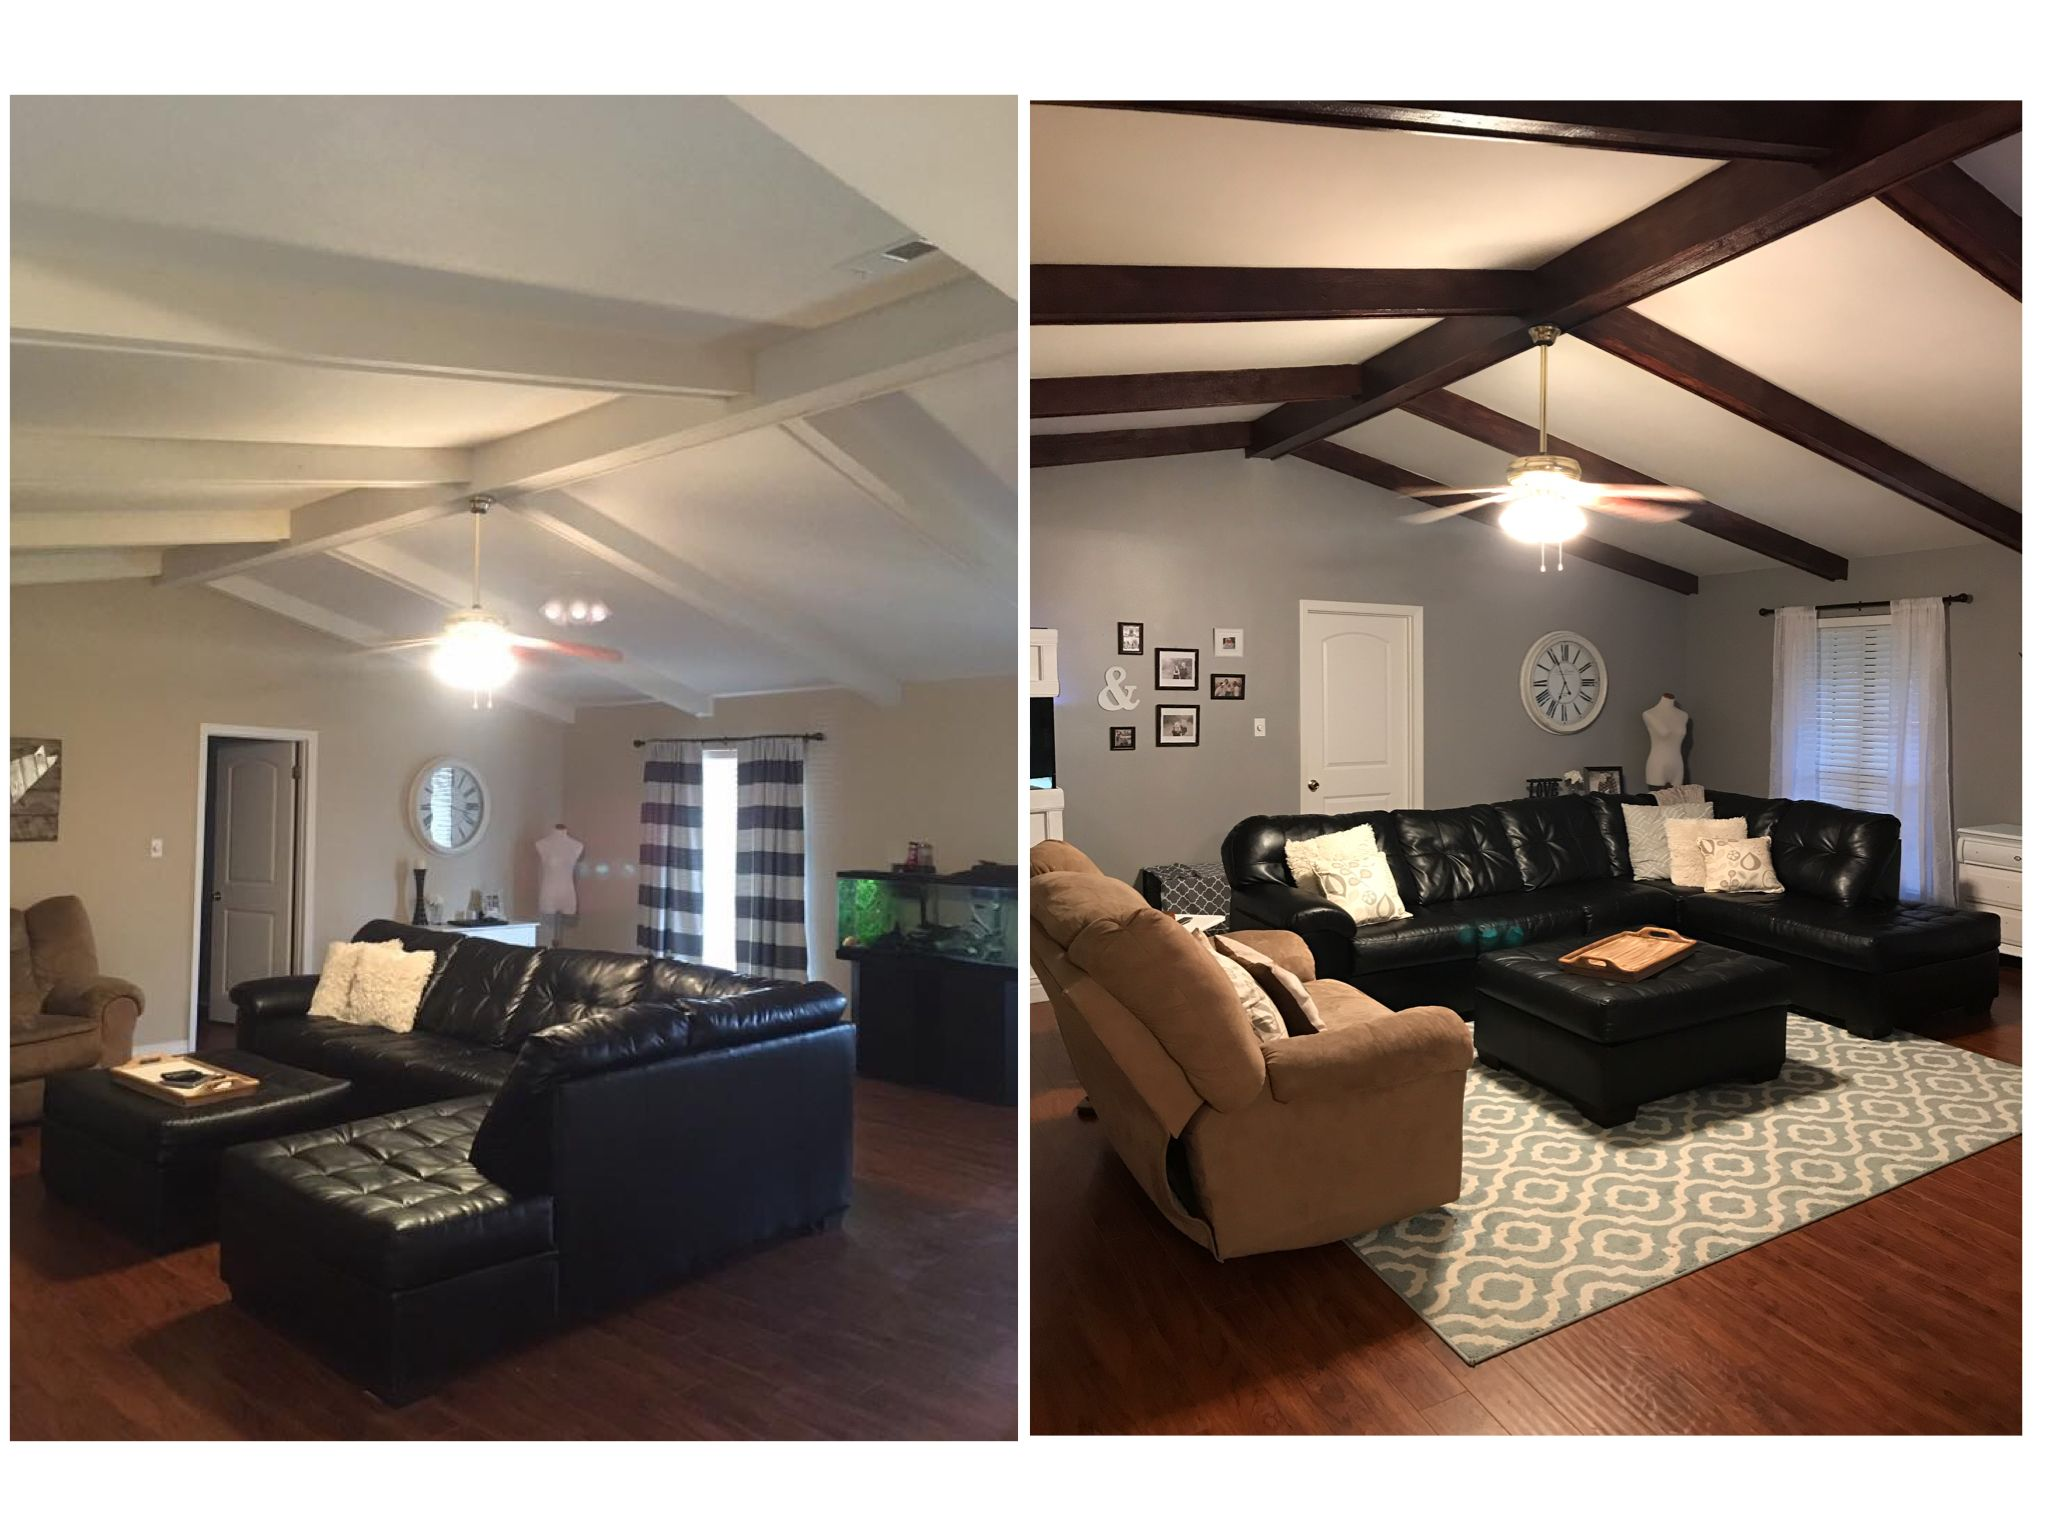 Before And After Staining The Wood Ceiling Beams After Previous